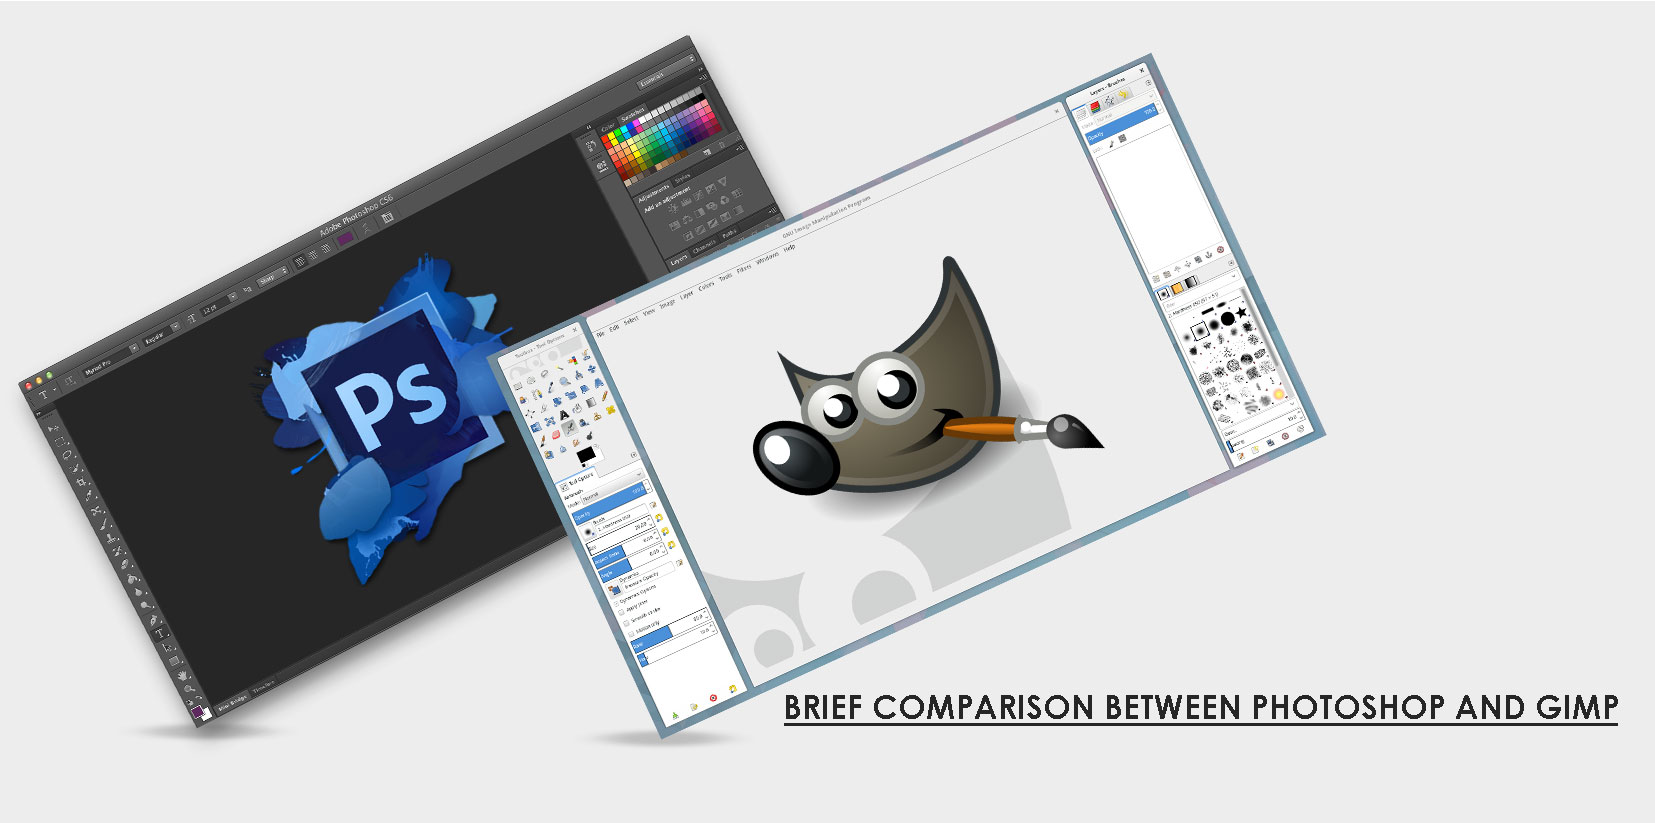 Gimp 2.0 Adobe Photoshop Vs Gimp Brief Comparison On Their Utility